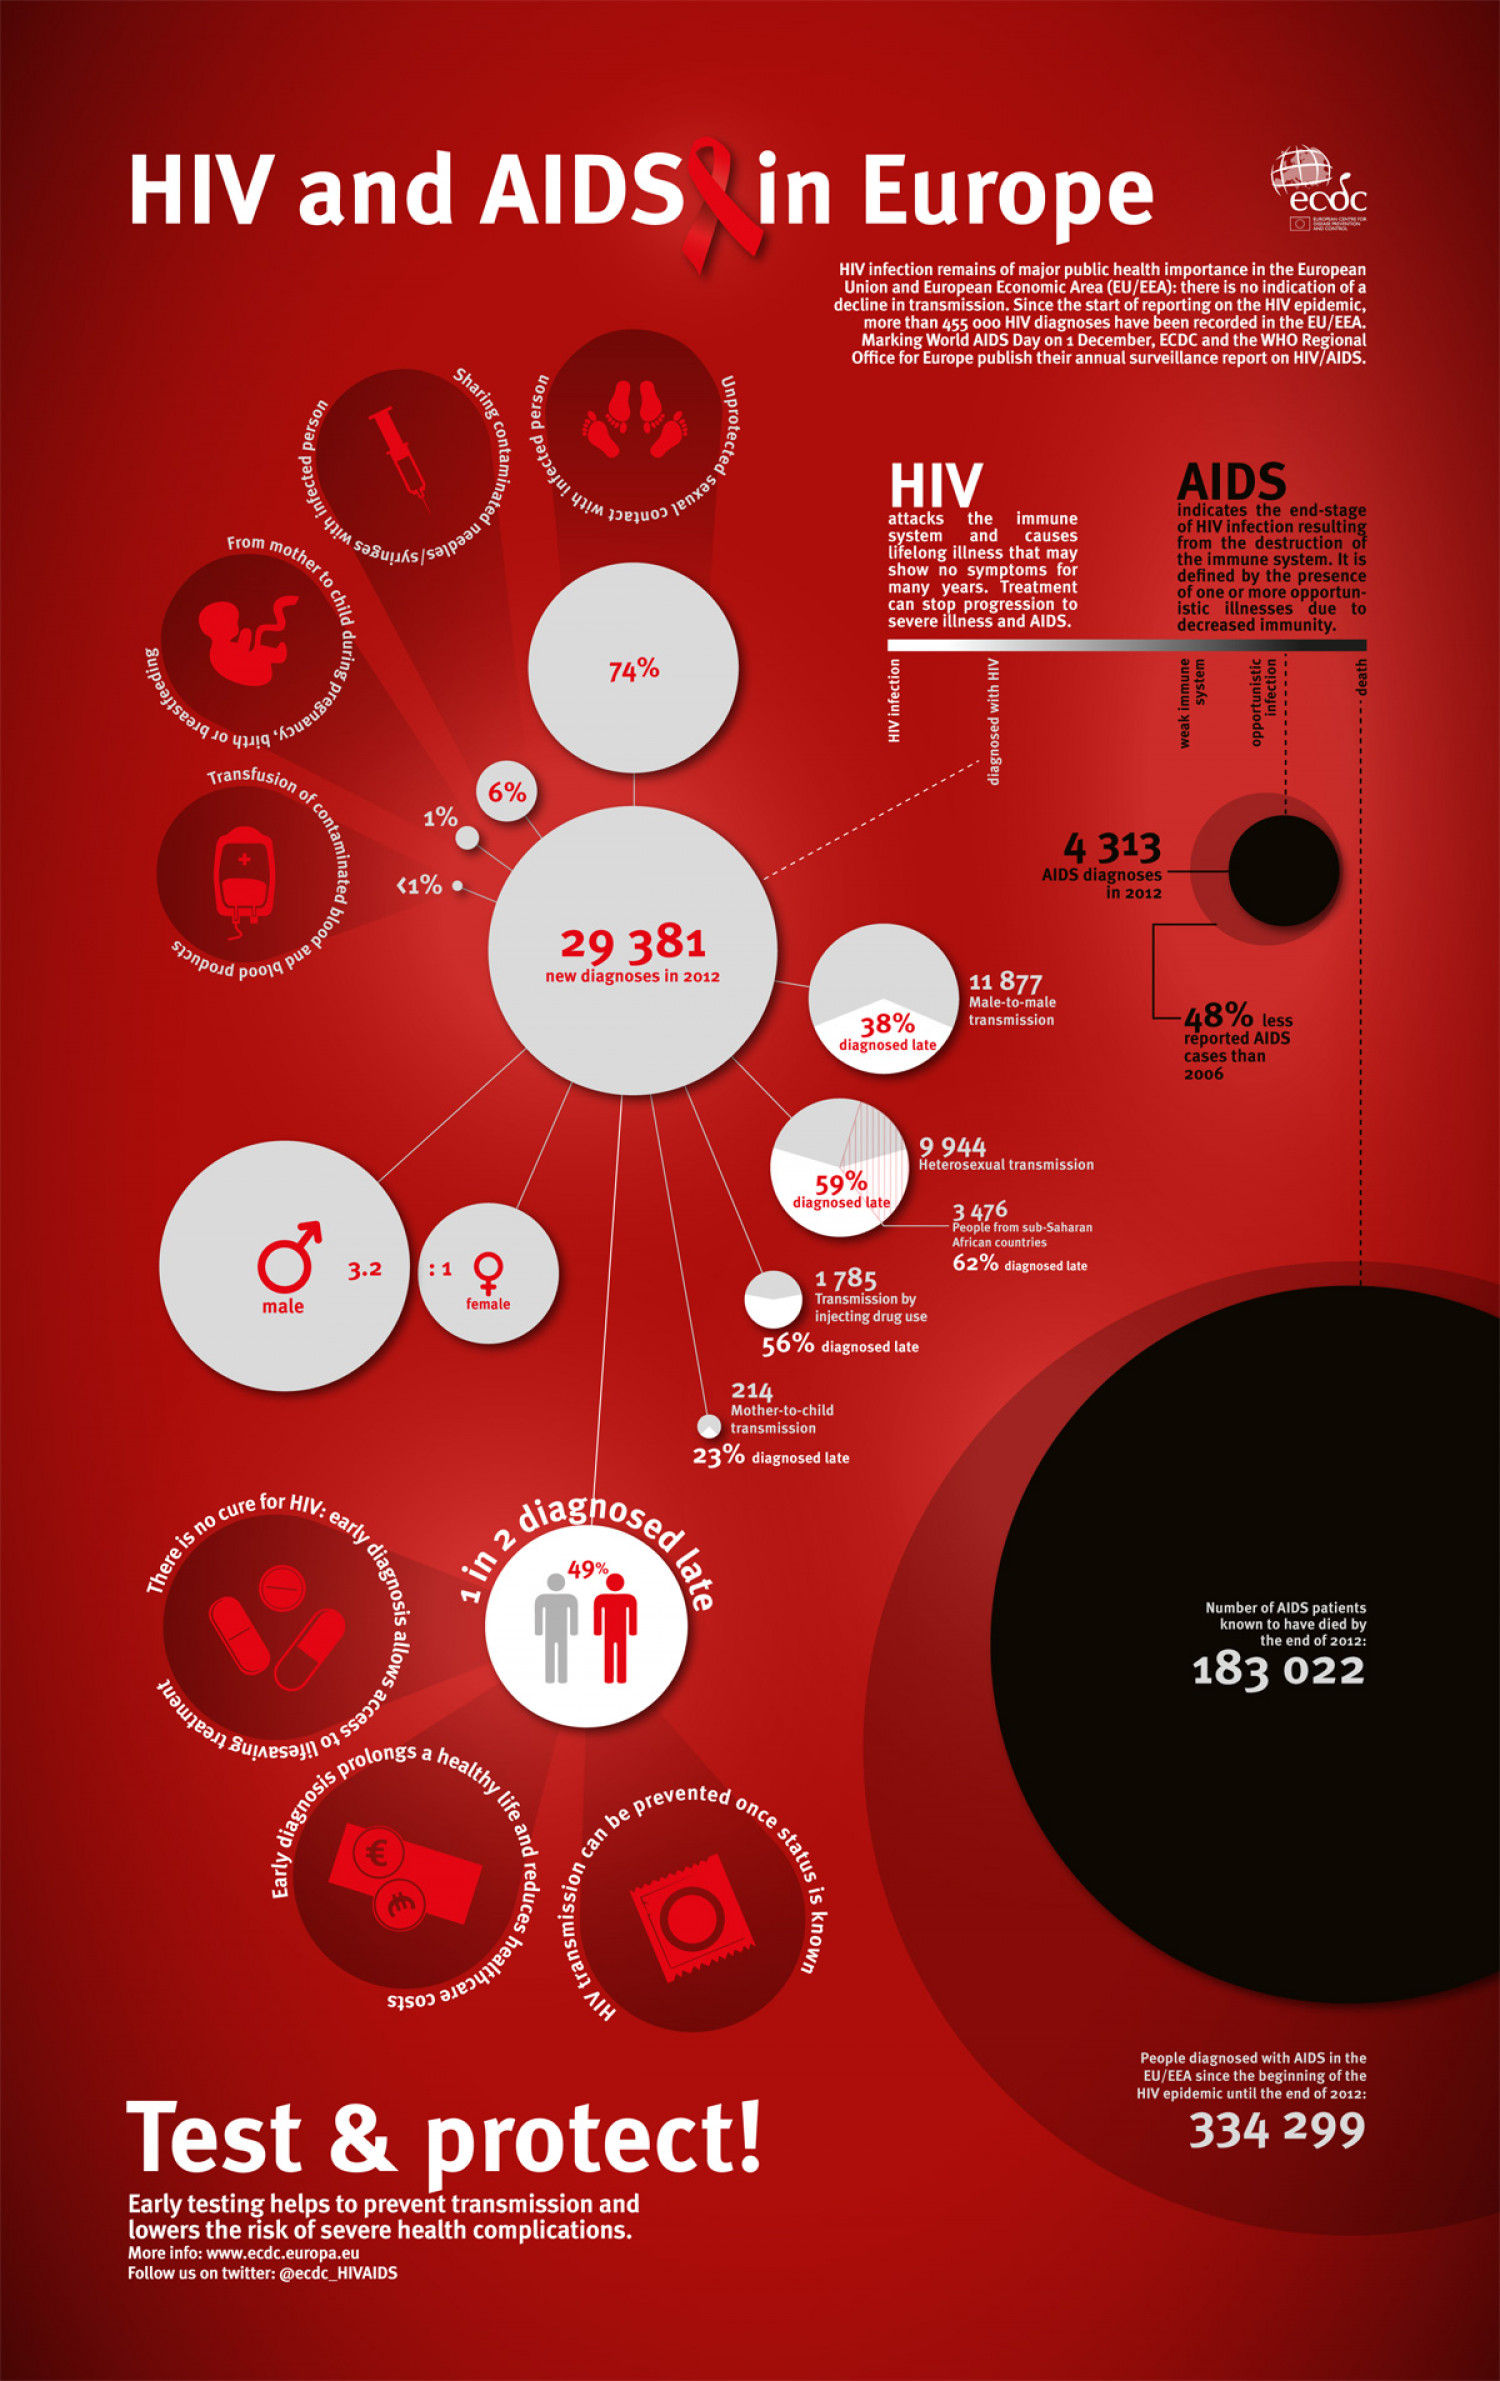 HIV and AIDS in Europe Infographic